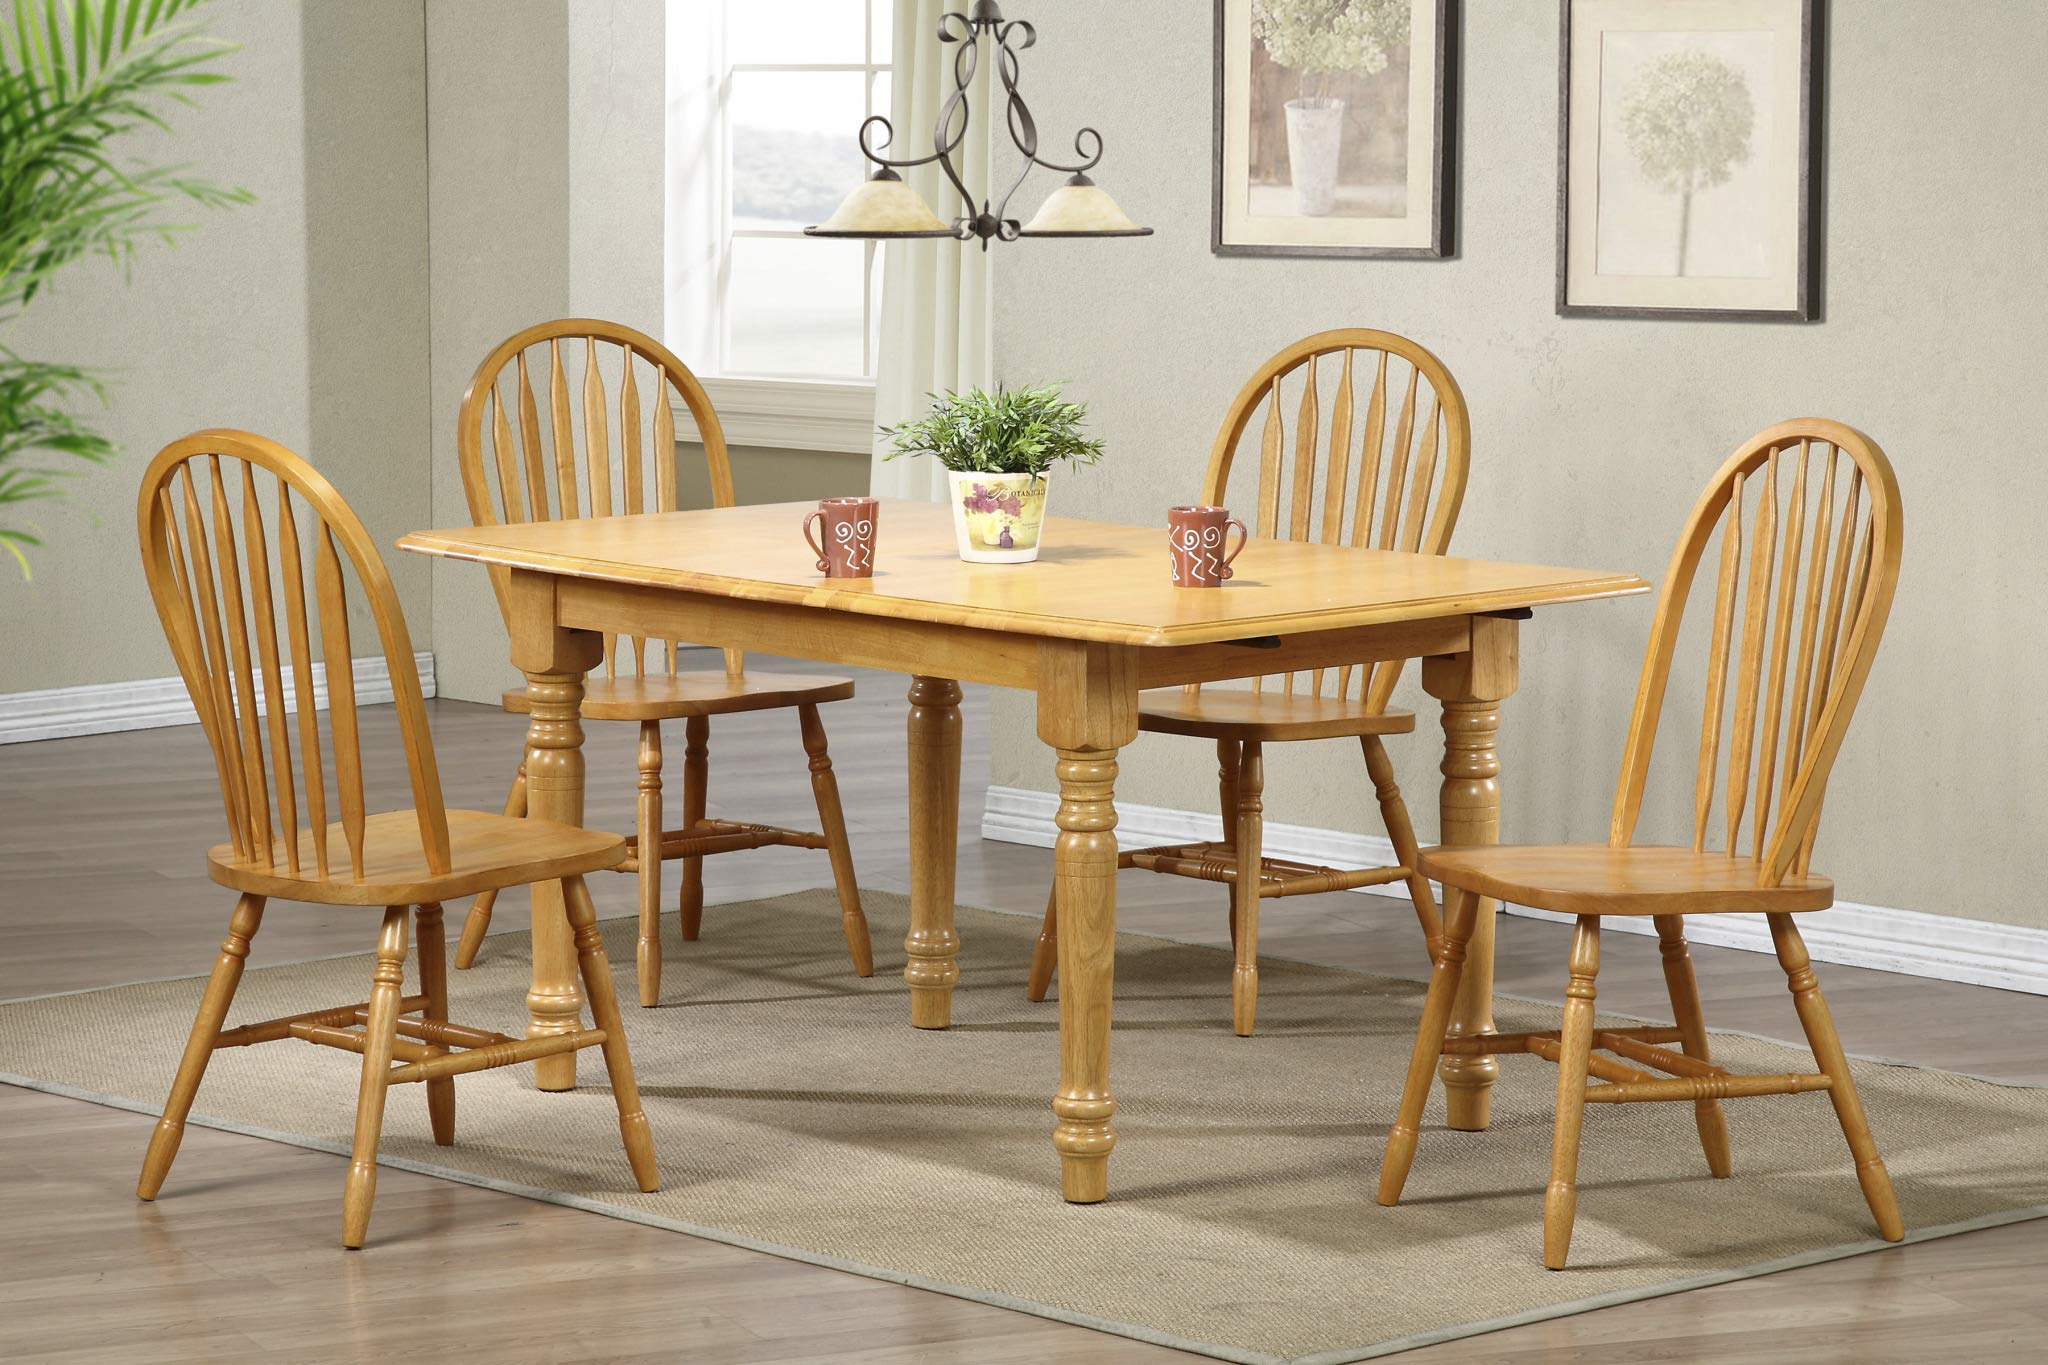 Sunset Trading Arrowback Dining Chair, Set of 2, 38'', Light Oak by Sunset Trading (Image #4)